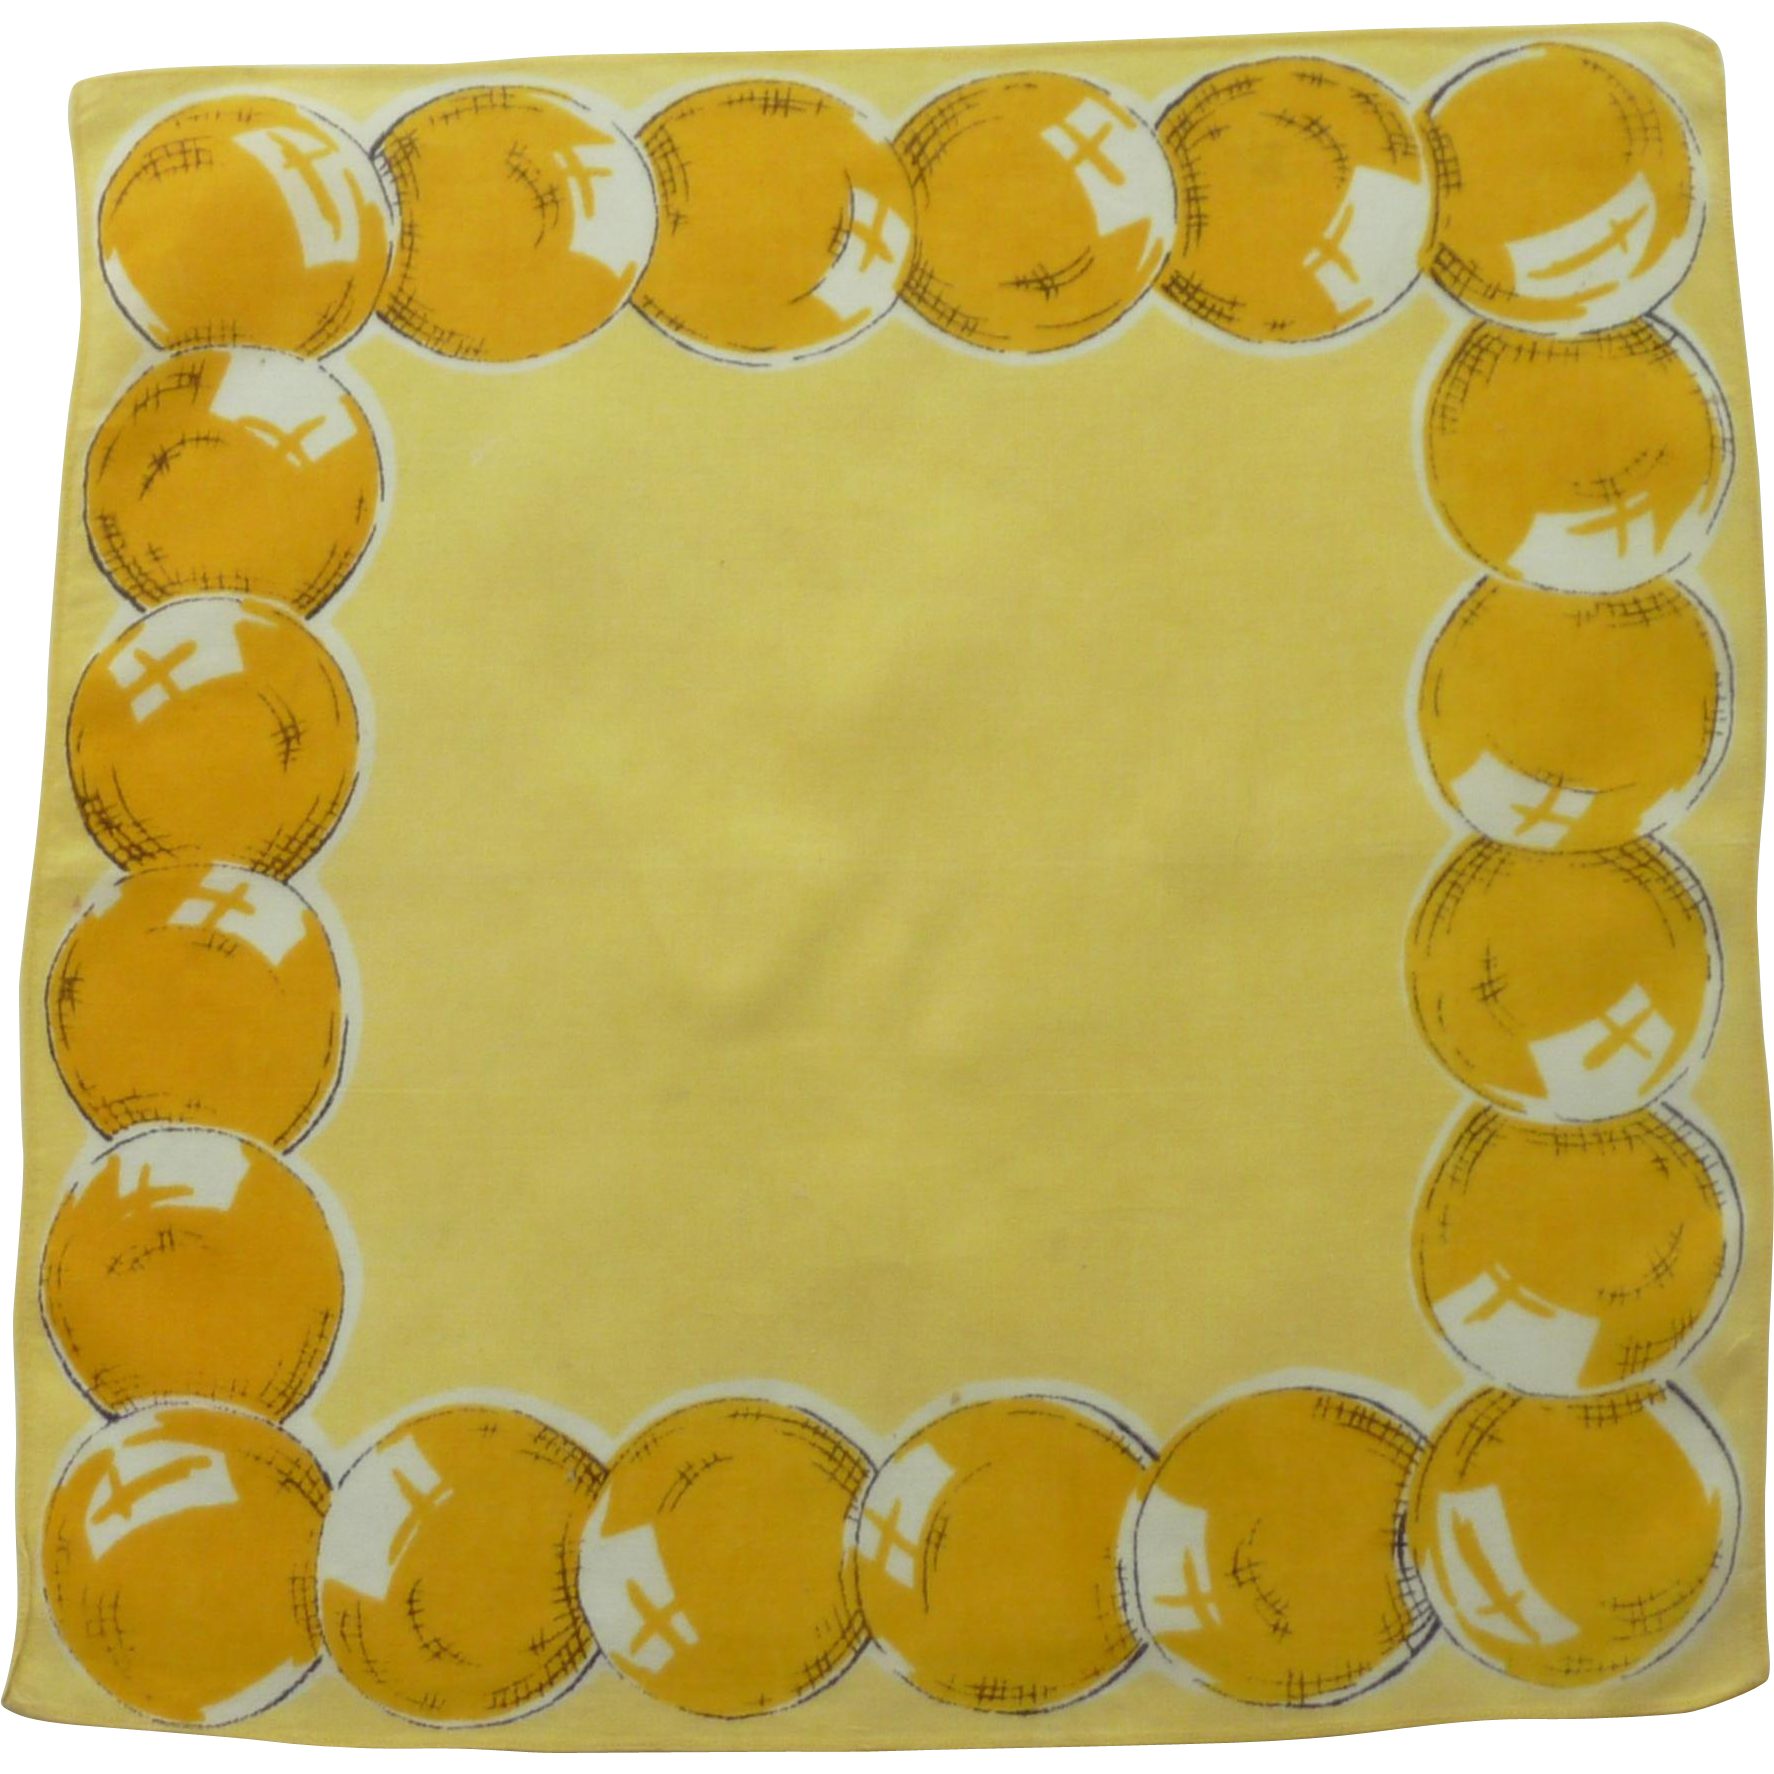 Yellow Balloons  for a Birthday on Yellow Handkerchief Hanky